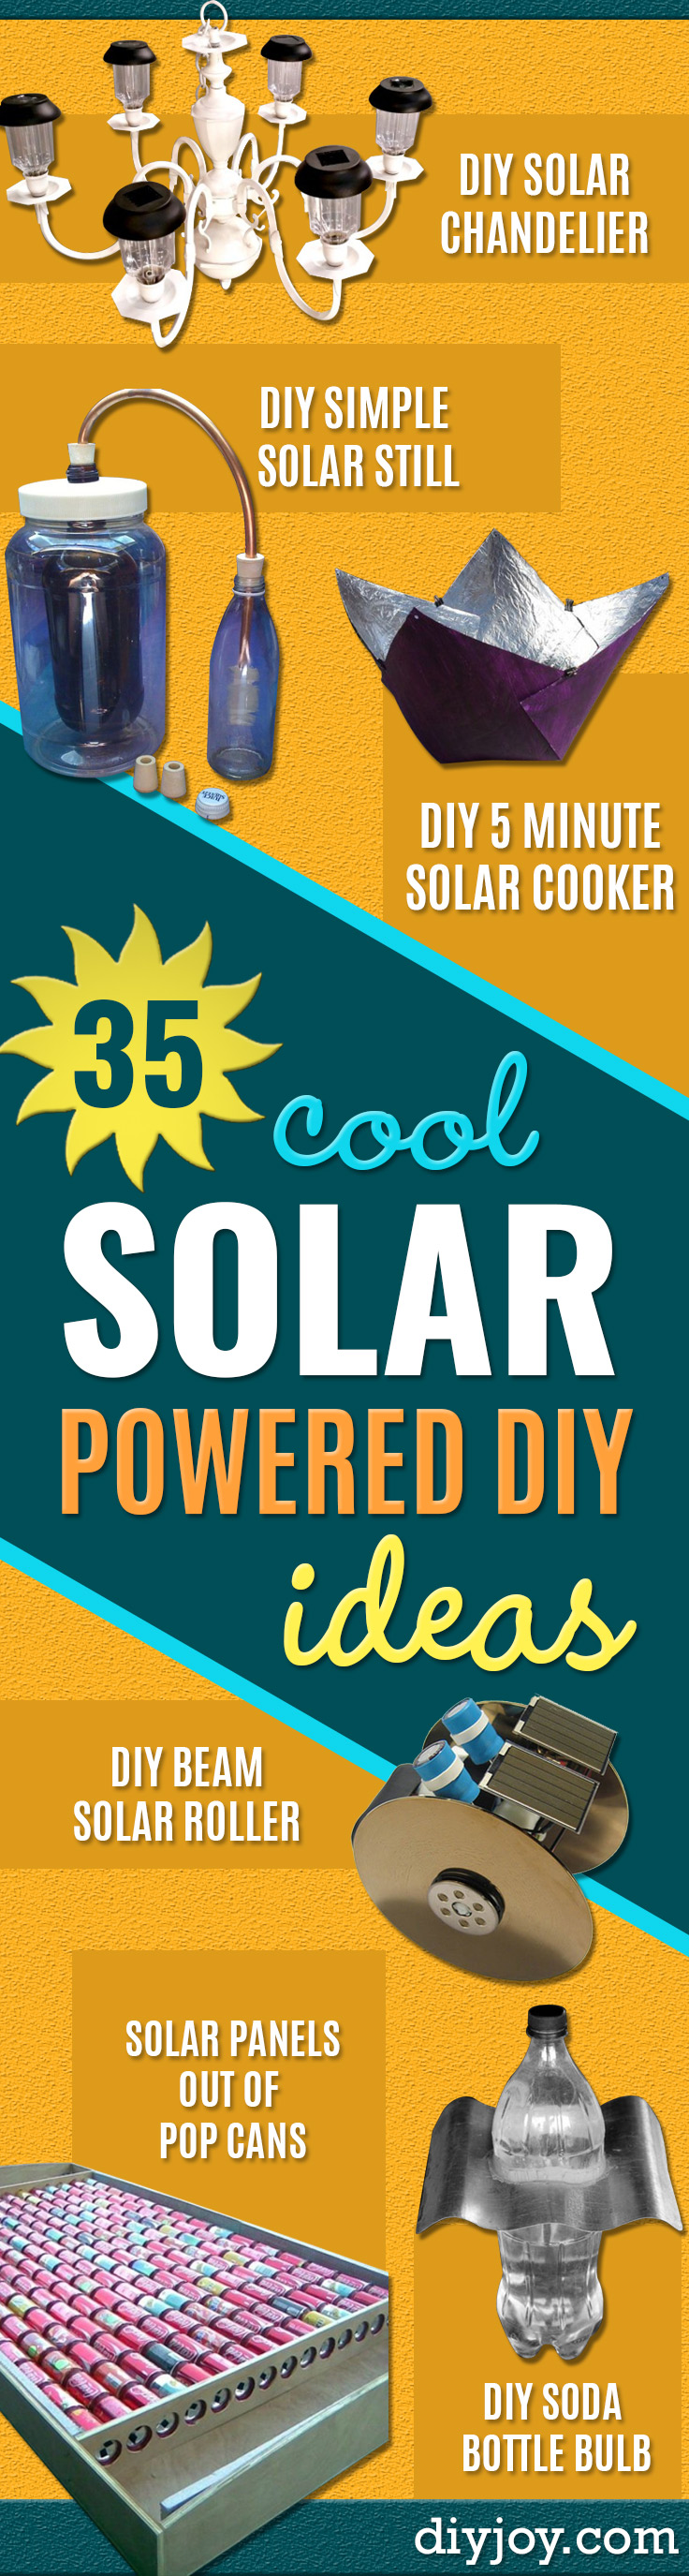 DIY Solar Powered Projects - Easy Solar Crafts and DYI Ideas for Making Solar Power Things You Can Use To Save Energy - Step by Step Tutorials for Making Things Without Batteries - DIY Projects and Crafts for Men and Women